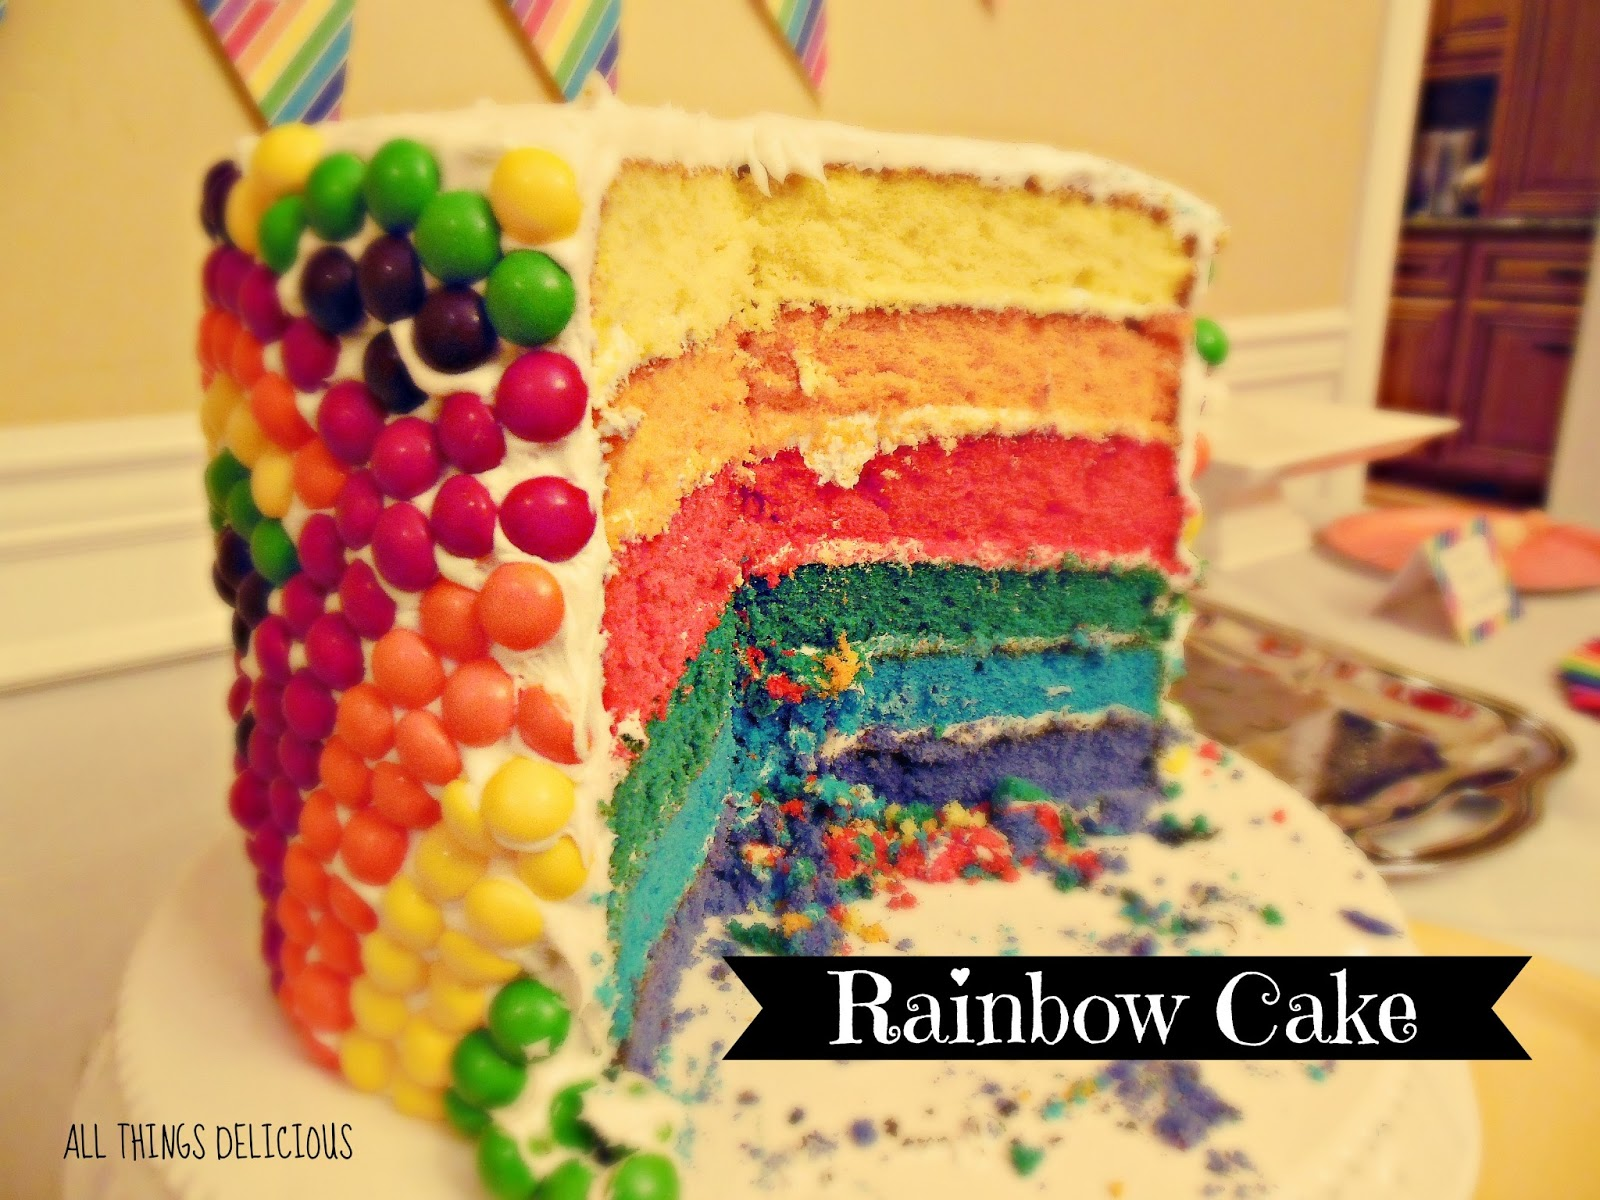 ALL THINGS DELICIOUS: A Rainbow Cake